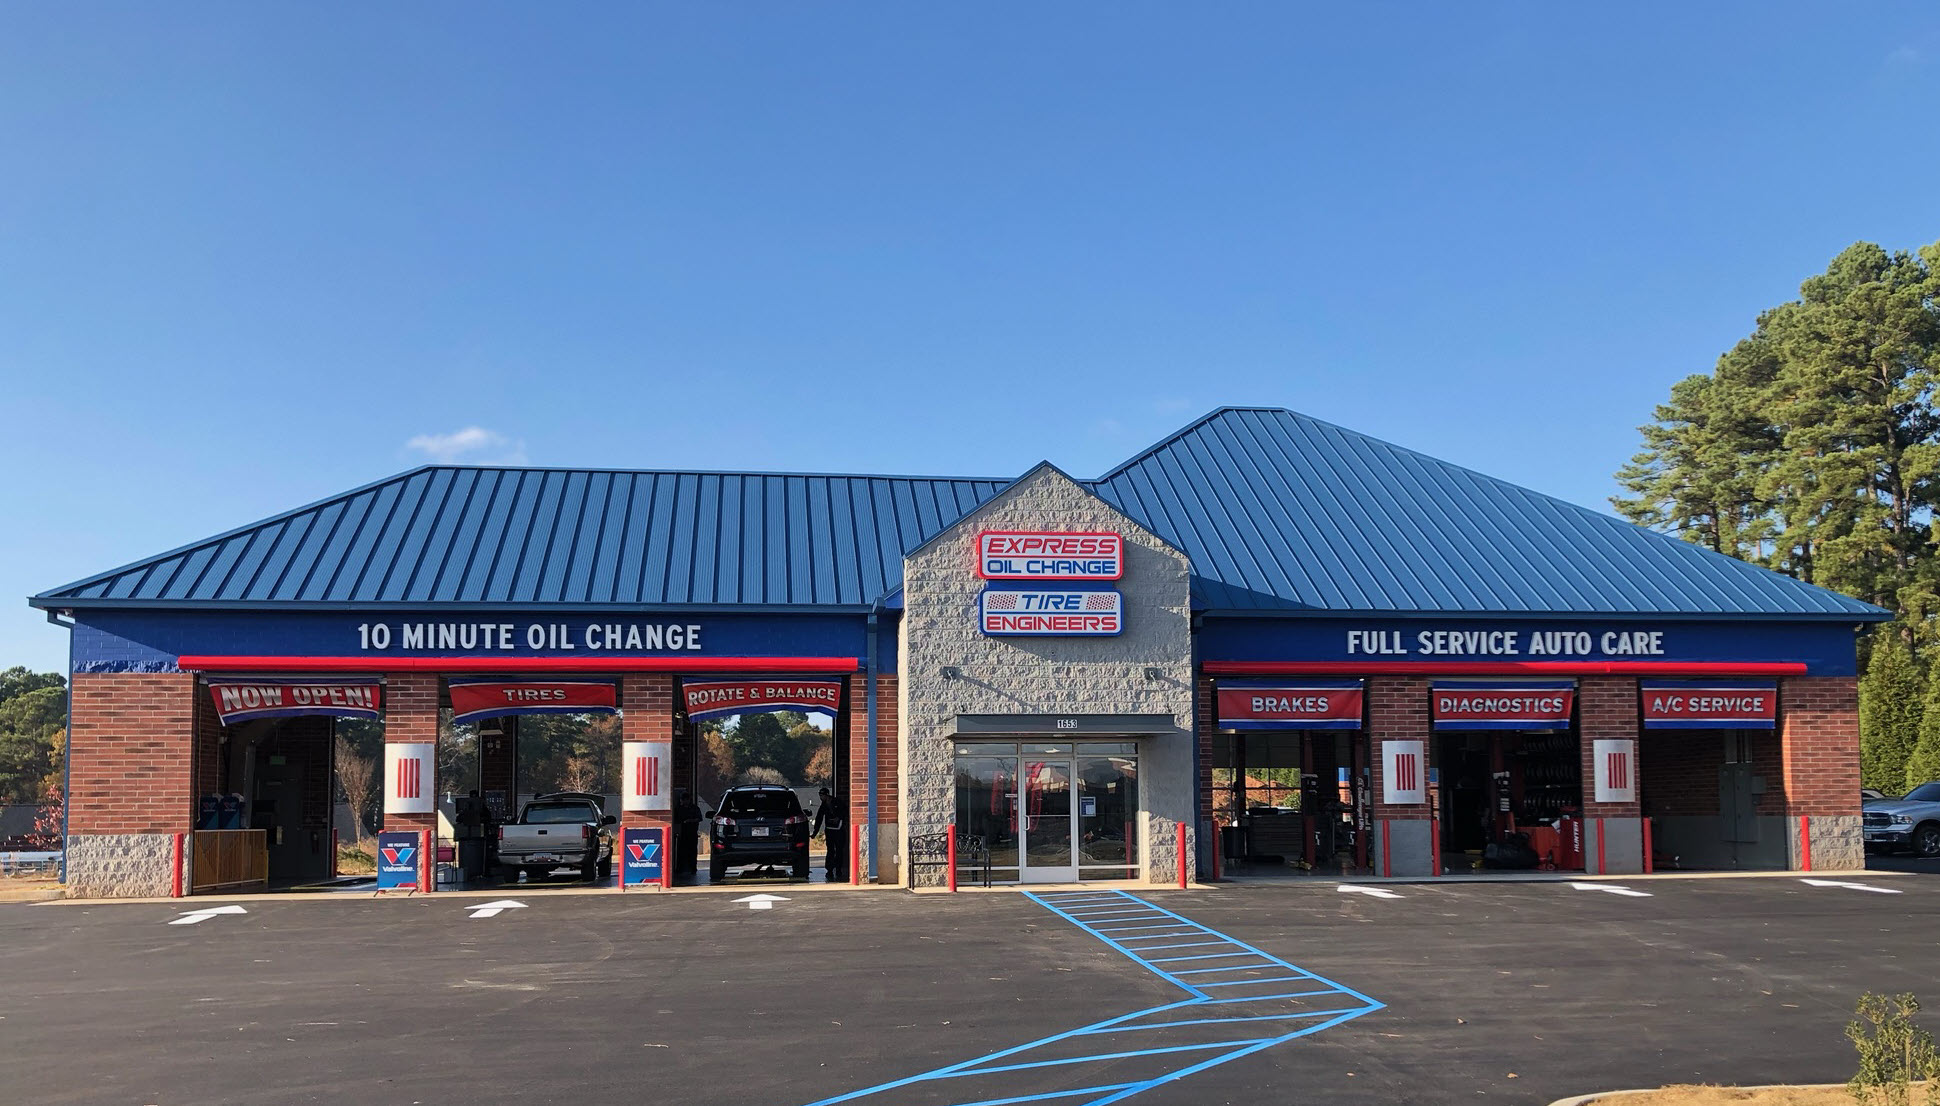 Express Oil Change & Tire Engineers Anderson, SC - Windsor Place store